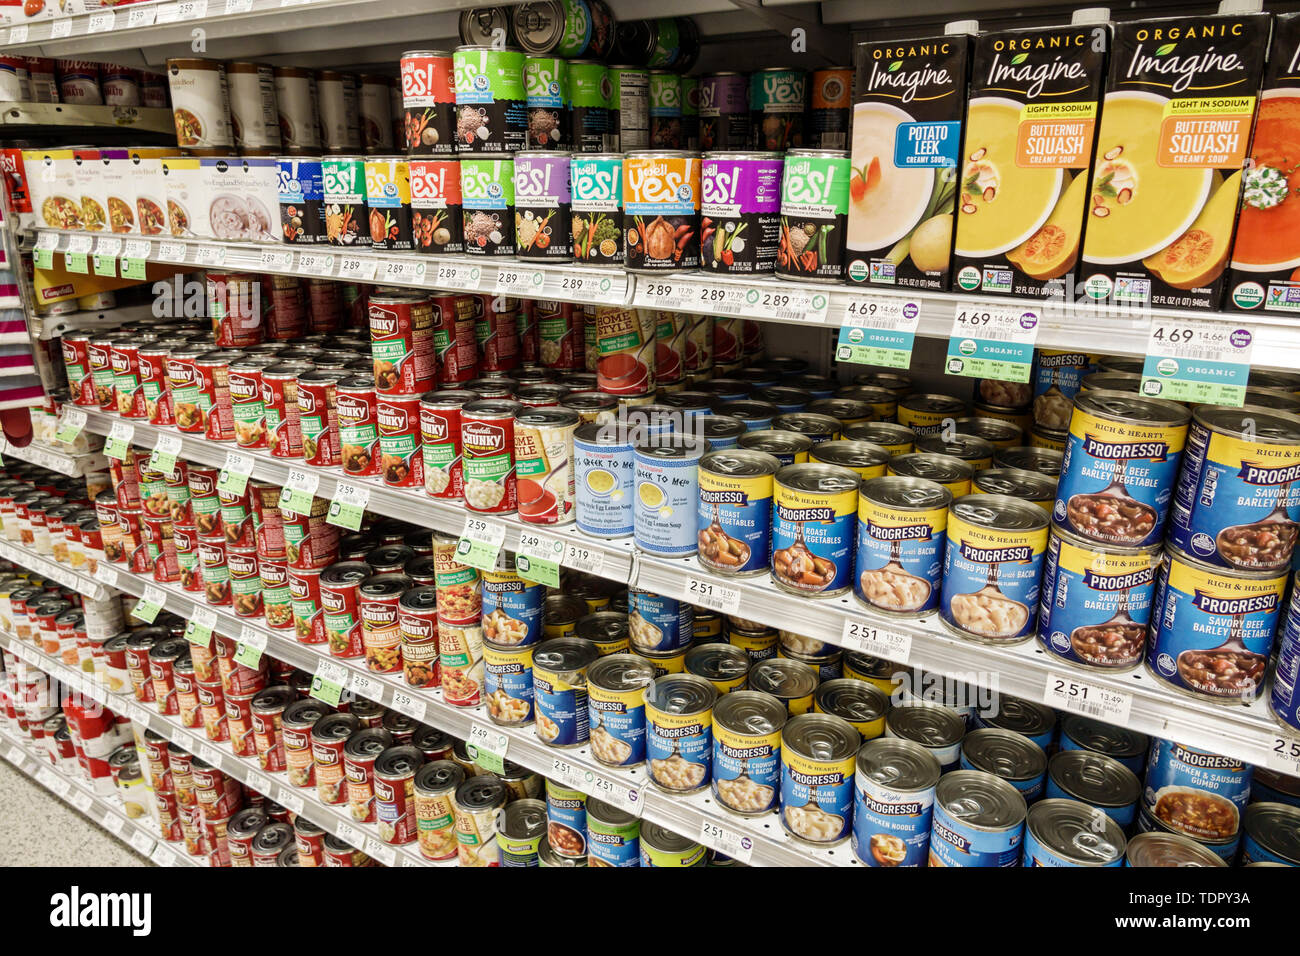 Miami Beach North Beach Publix grocery store supermarket inside display sale soup cans Progresso Campbell Chunky organic cartons shelves - Stock Image